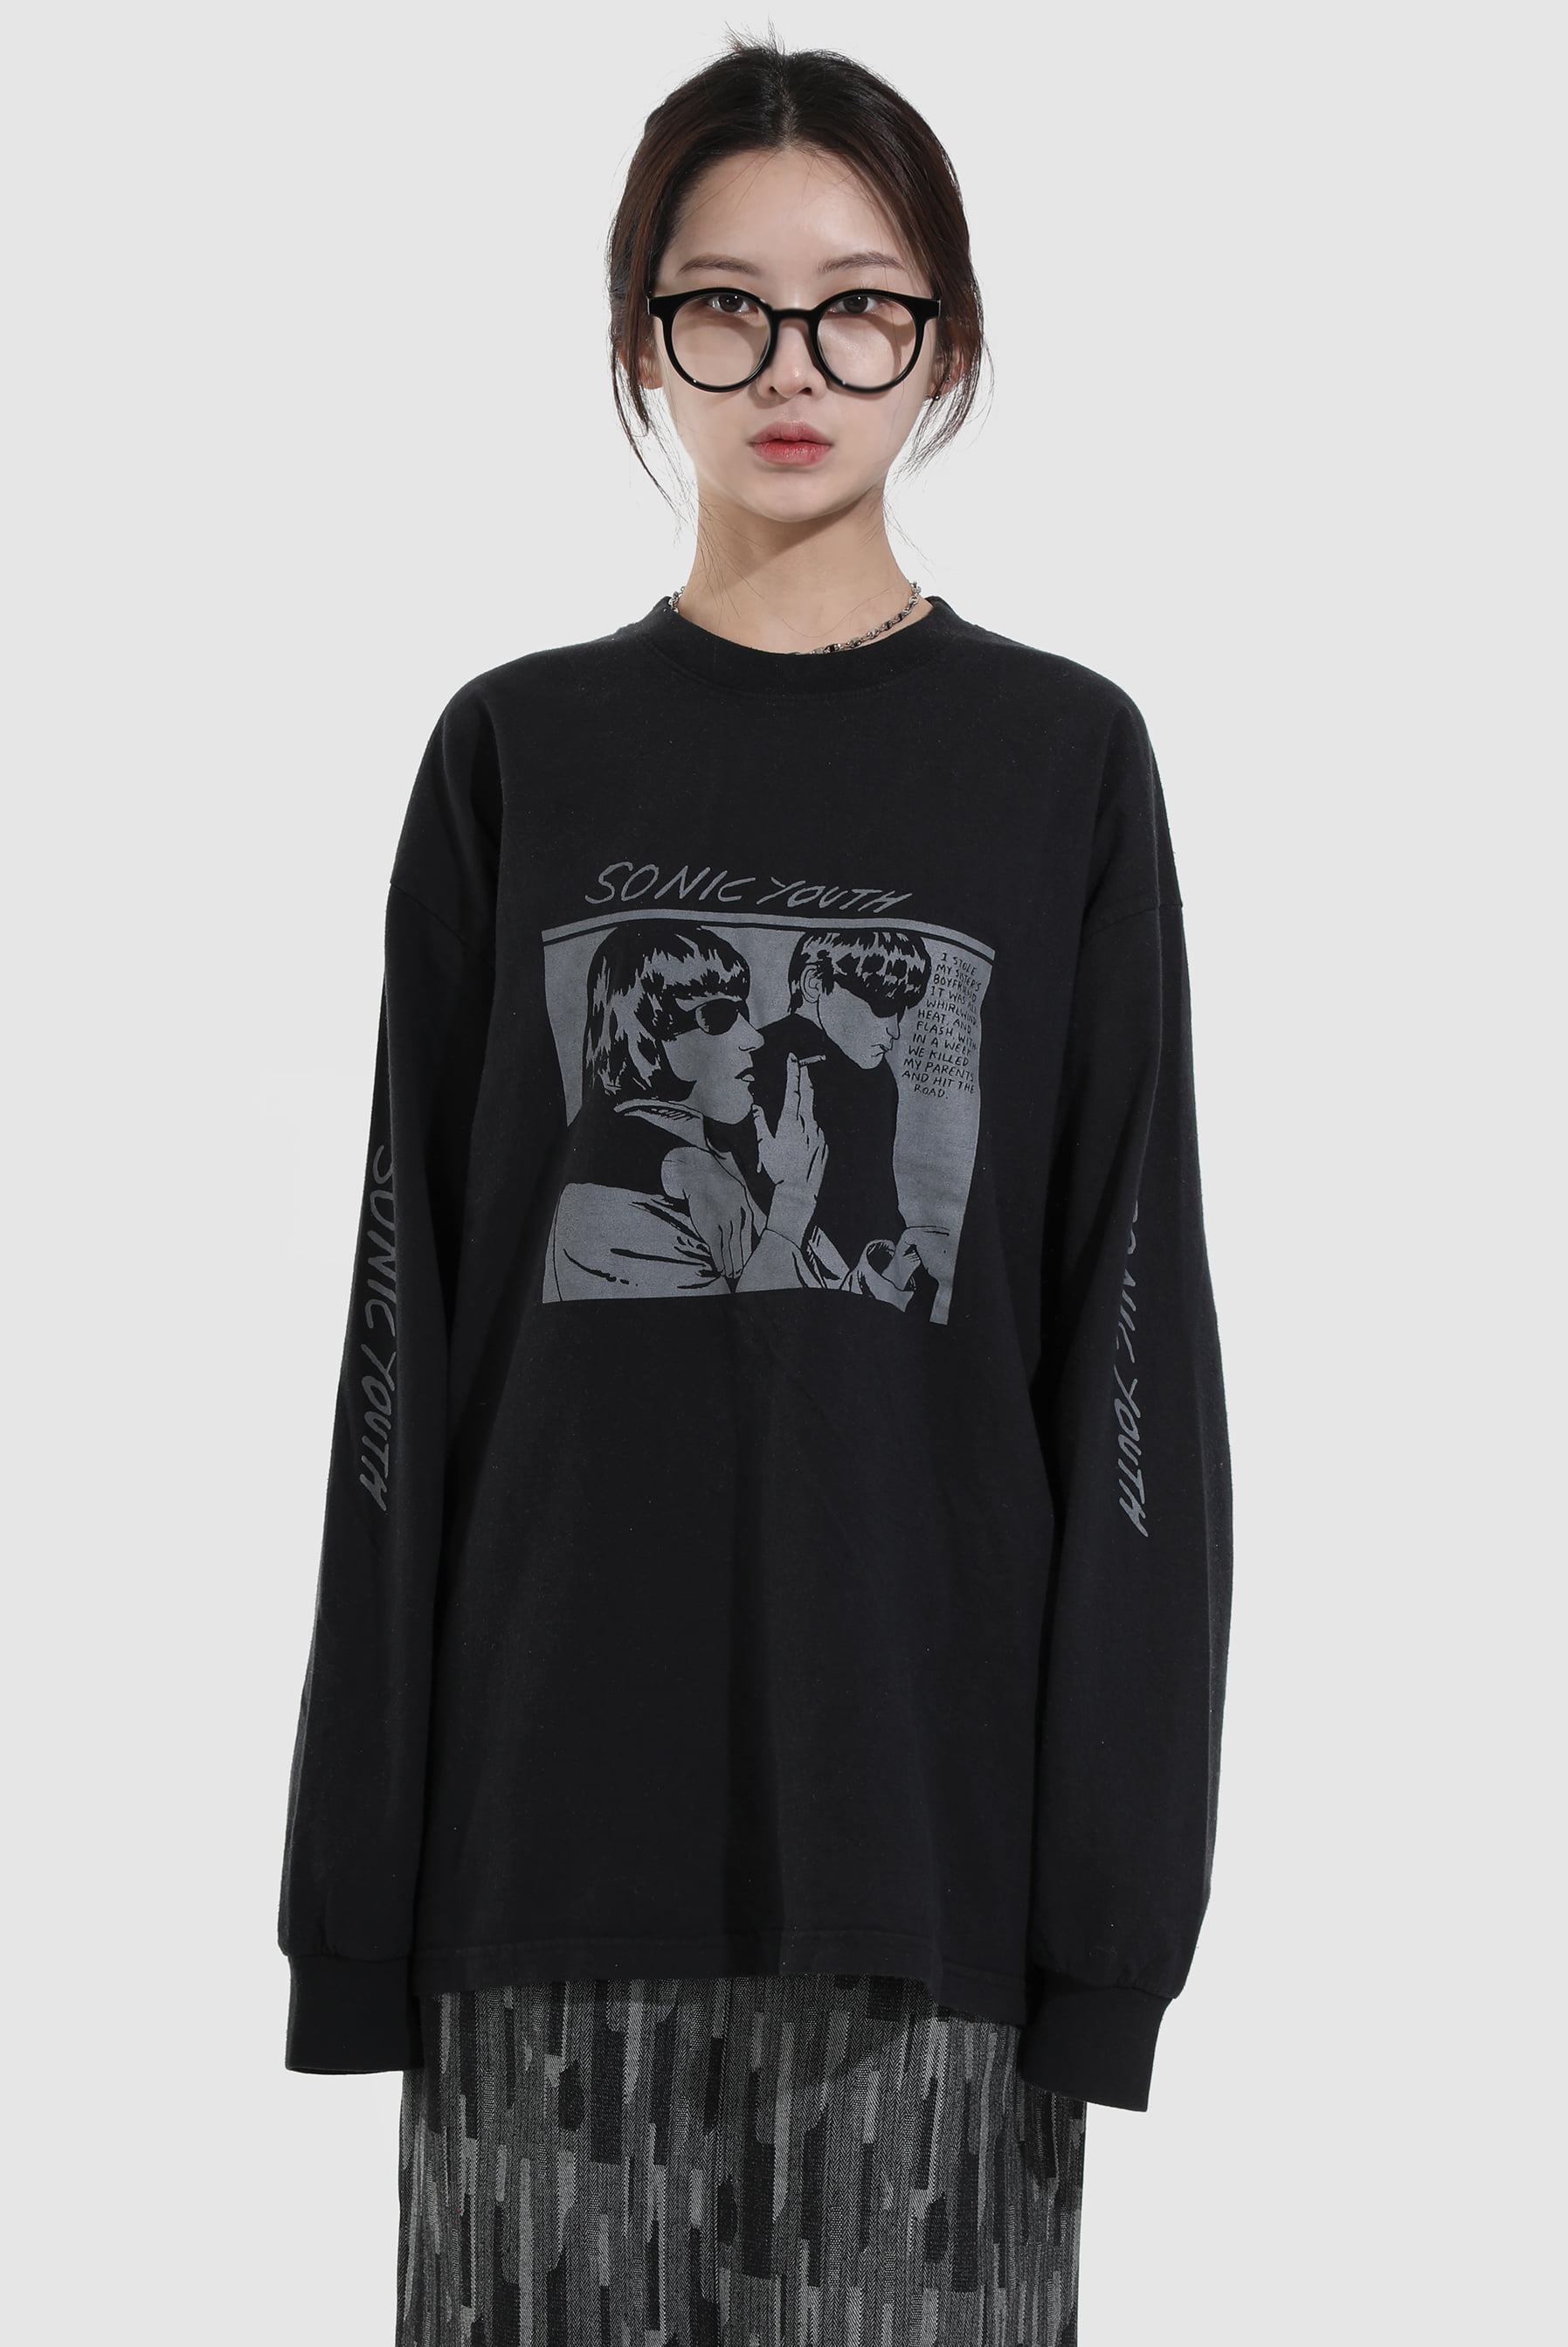 Sonic_Youth Dying T